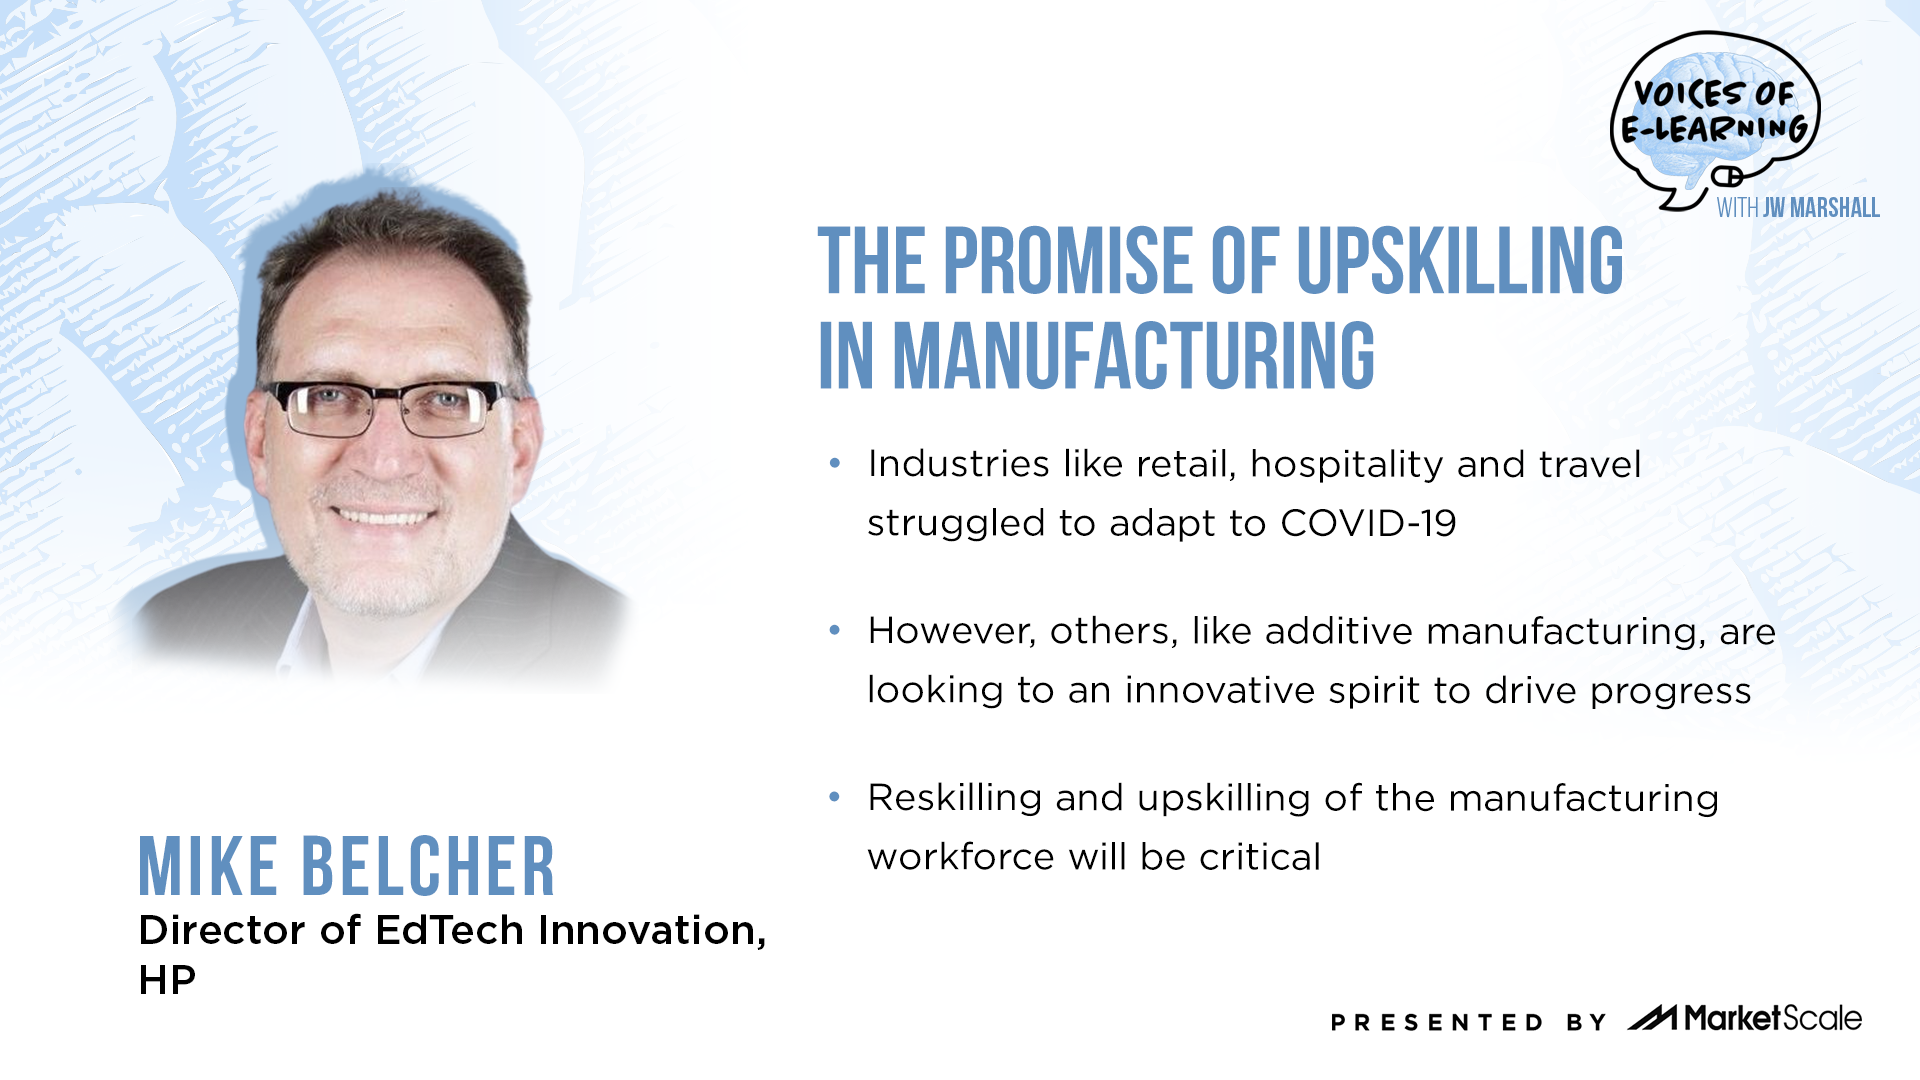 The Promise of Upskilling in Manufacturing